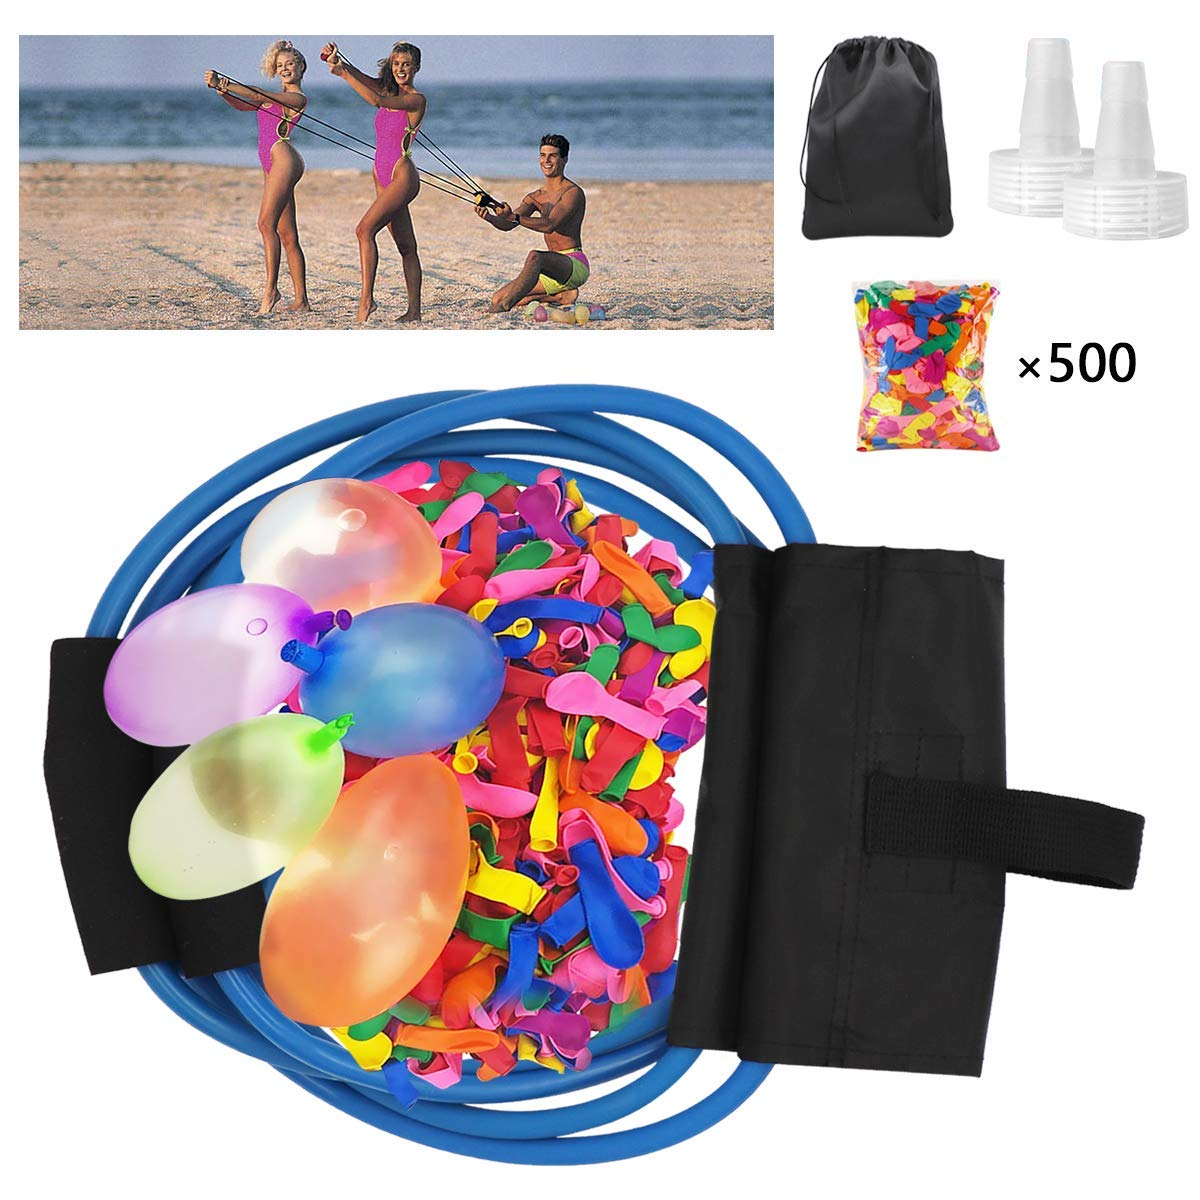 POKONBOY Water Balloon Launcher with 500 Water Balloons , 500 Yards Water Balloon Slingshot / Cannon / Launcher with 2 Refill Kits Fight Pool Party Toy, 3 Person Giant Angry Birds Summer Beach Games